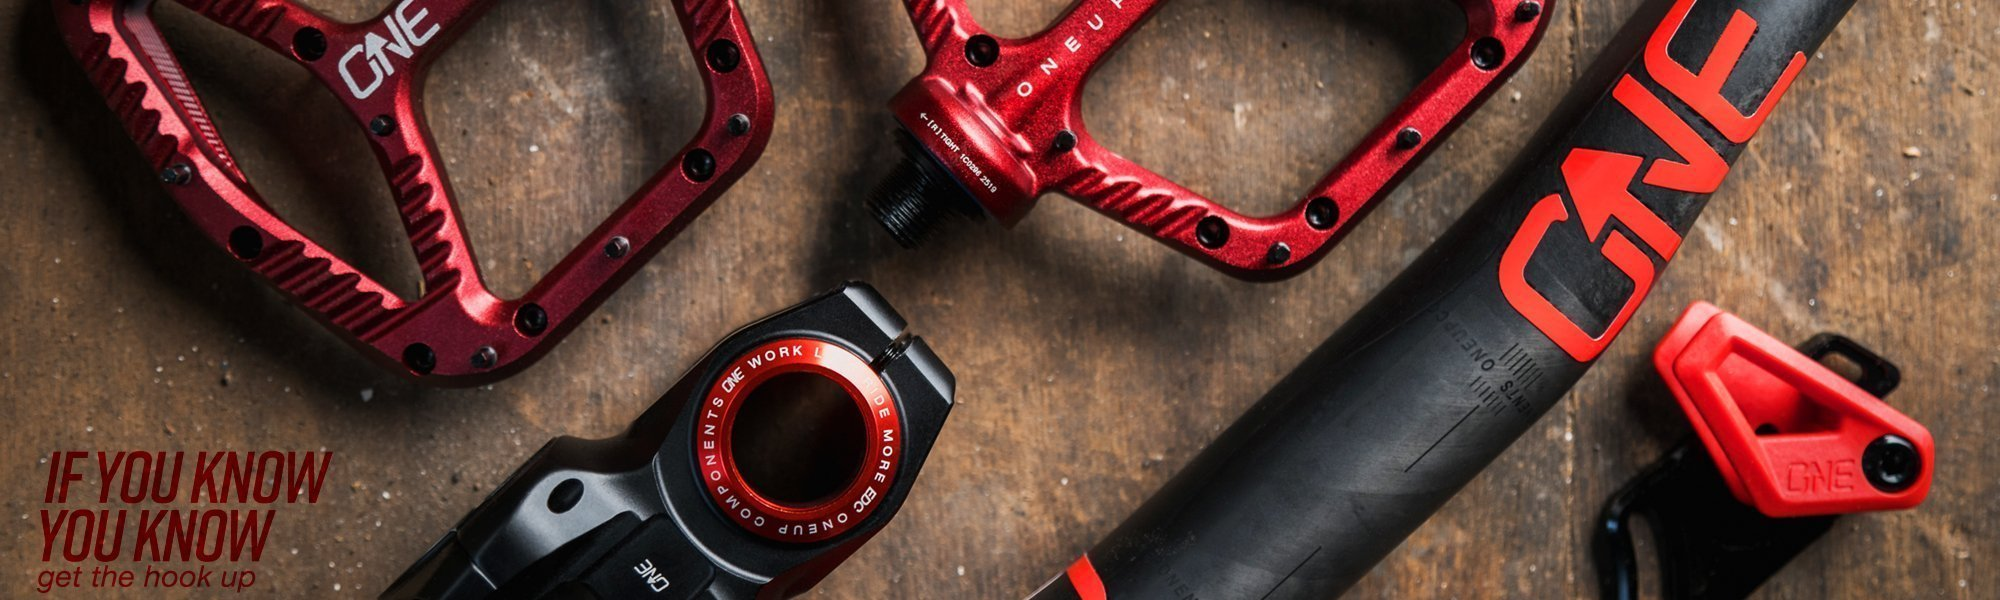 OneUp-Components-Banner-Santa-Cruz-Megatower-OneUp-Carbon-Handlebar-EDC-Stem-Grips-Purple-Front